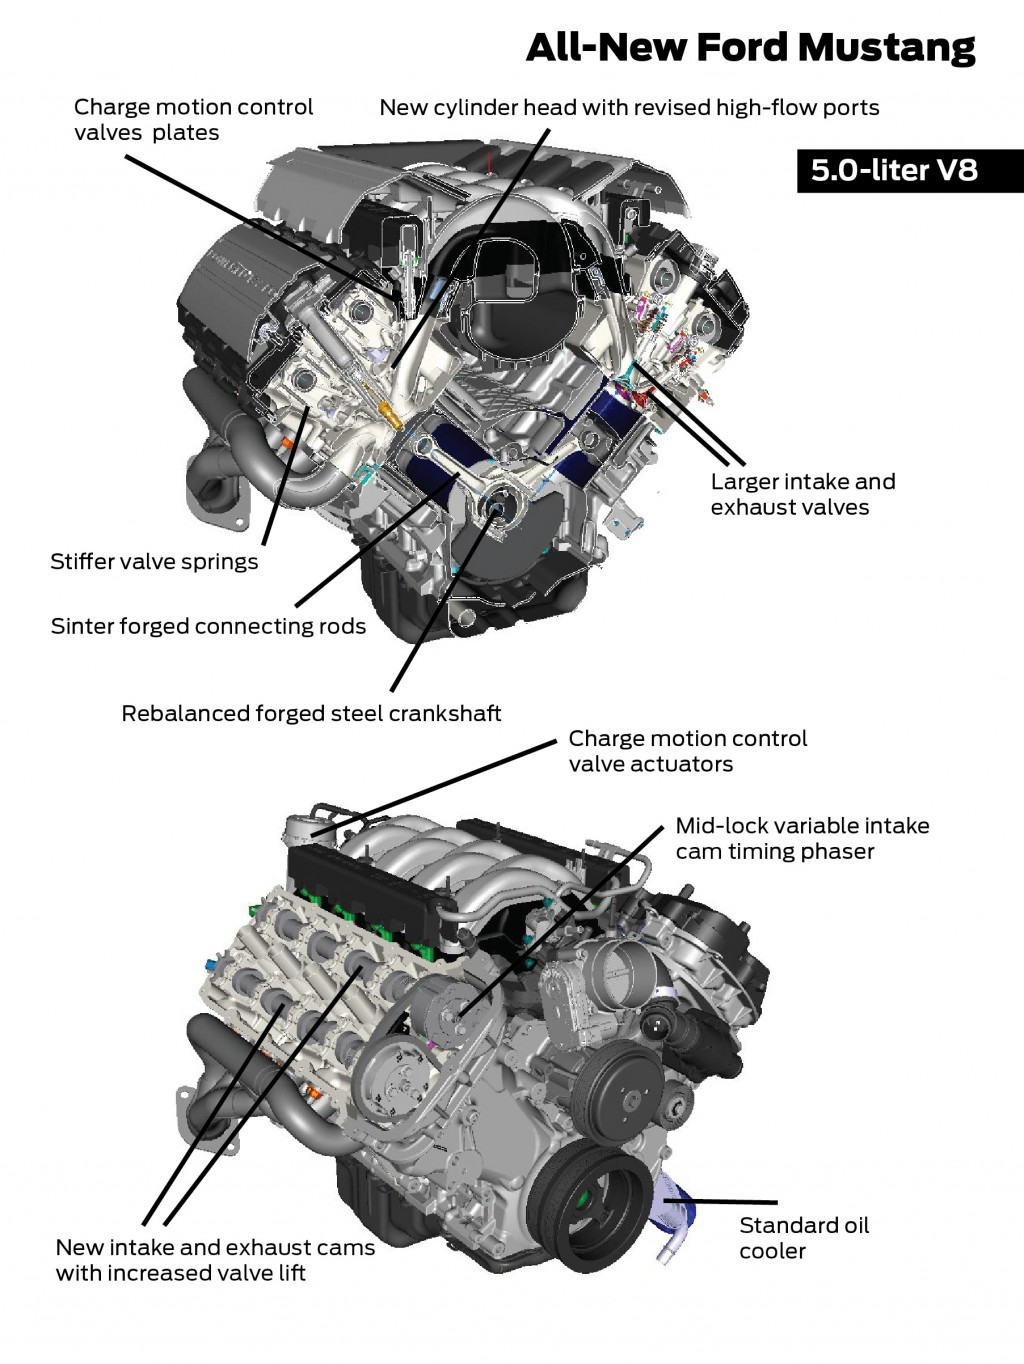 2015 Ford Mustang's Engines & Independent Rear Suspension